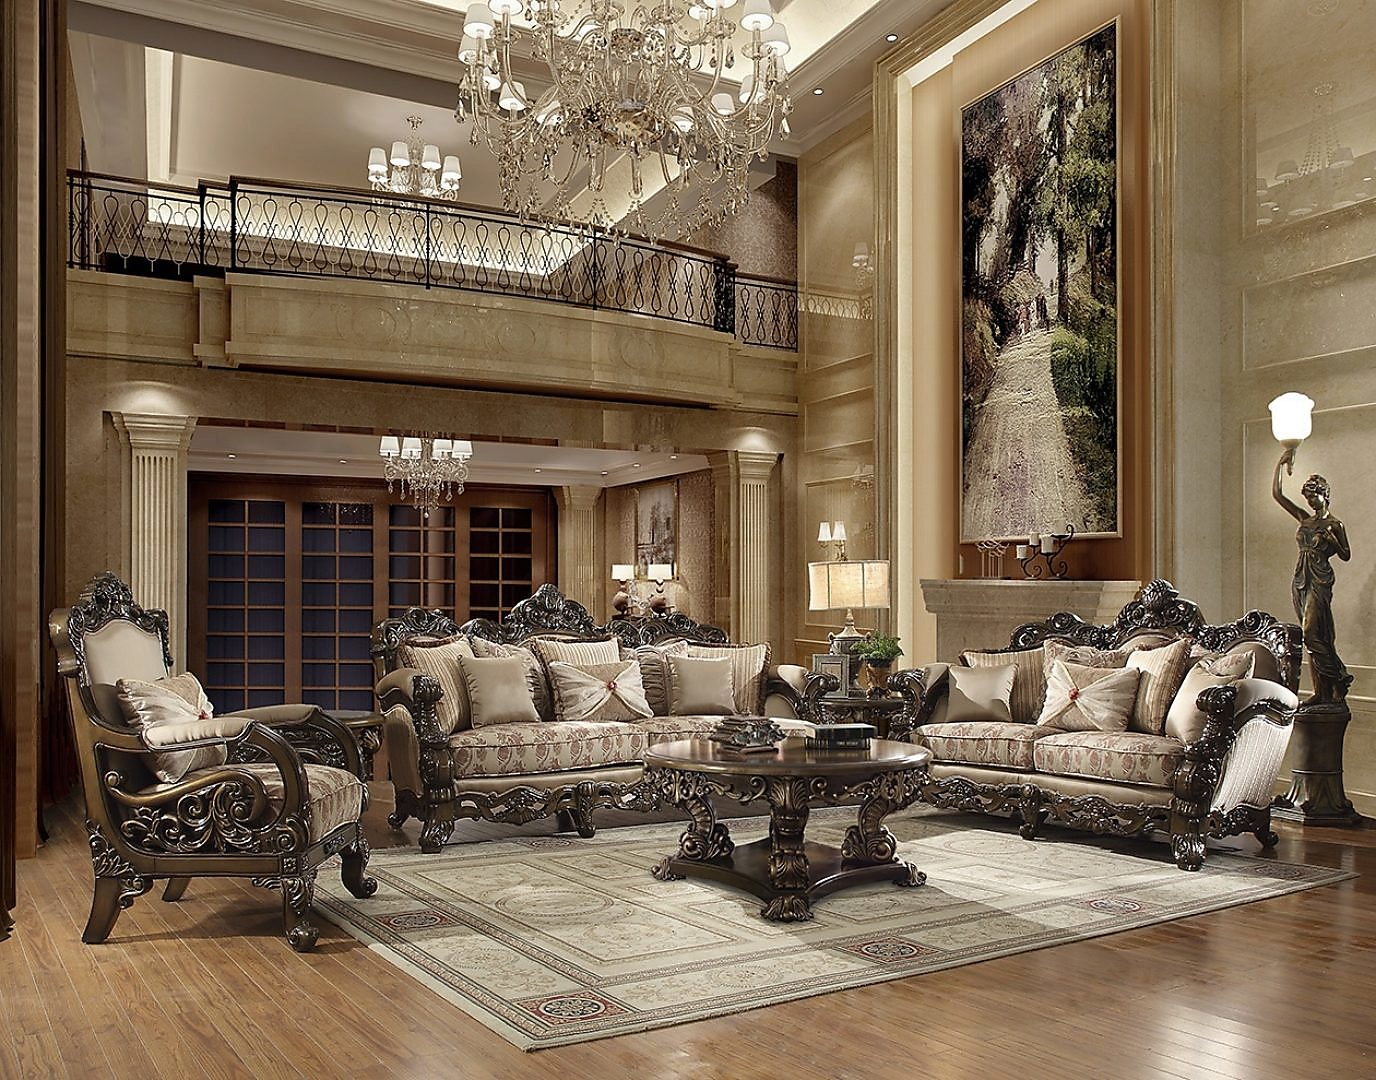 Traditional Living Room Set 3 PCS in Brown Fabric Traditional Style Homey Design HD-2658